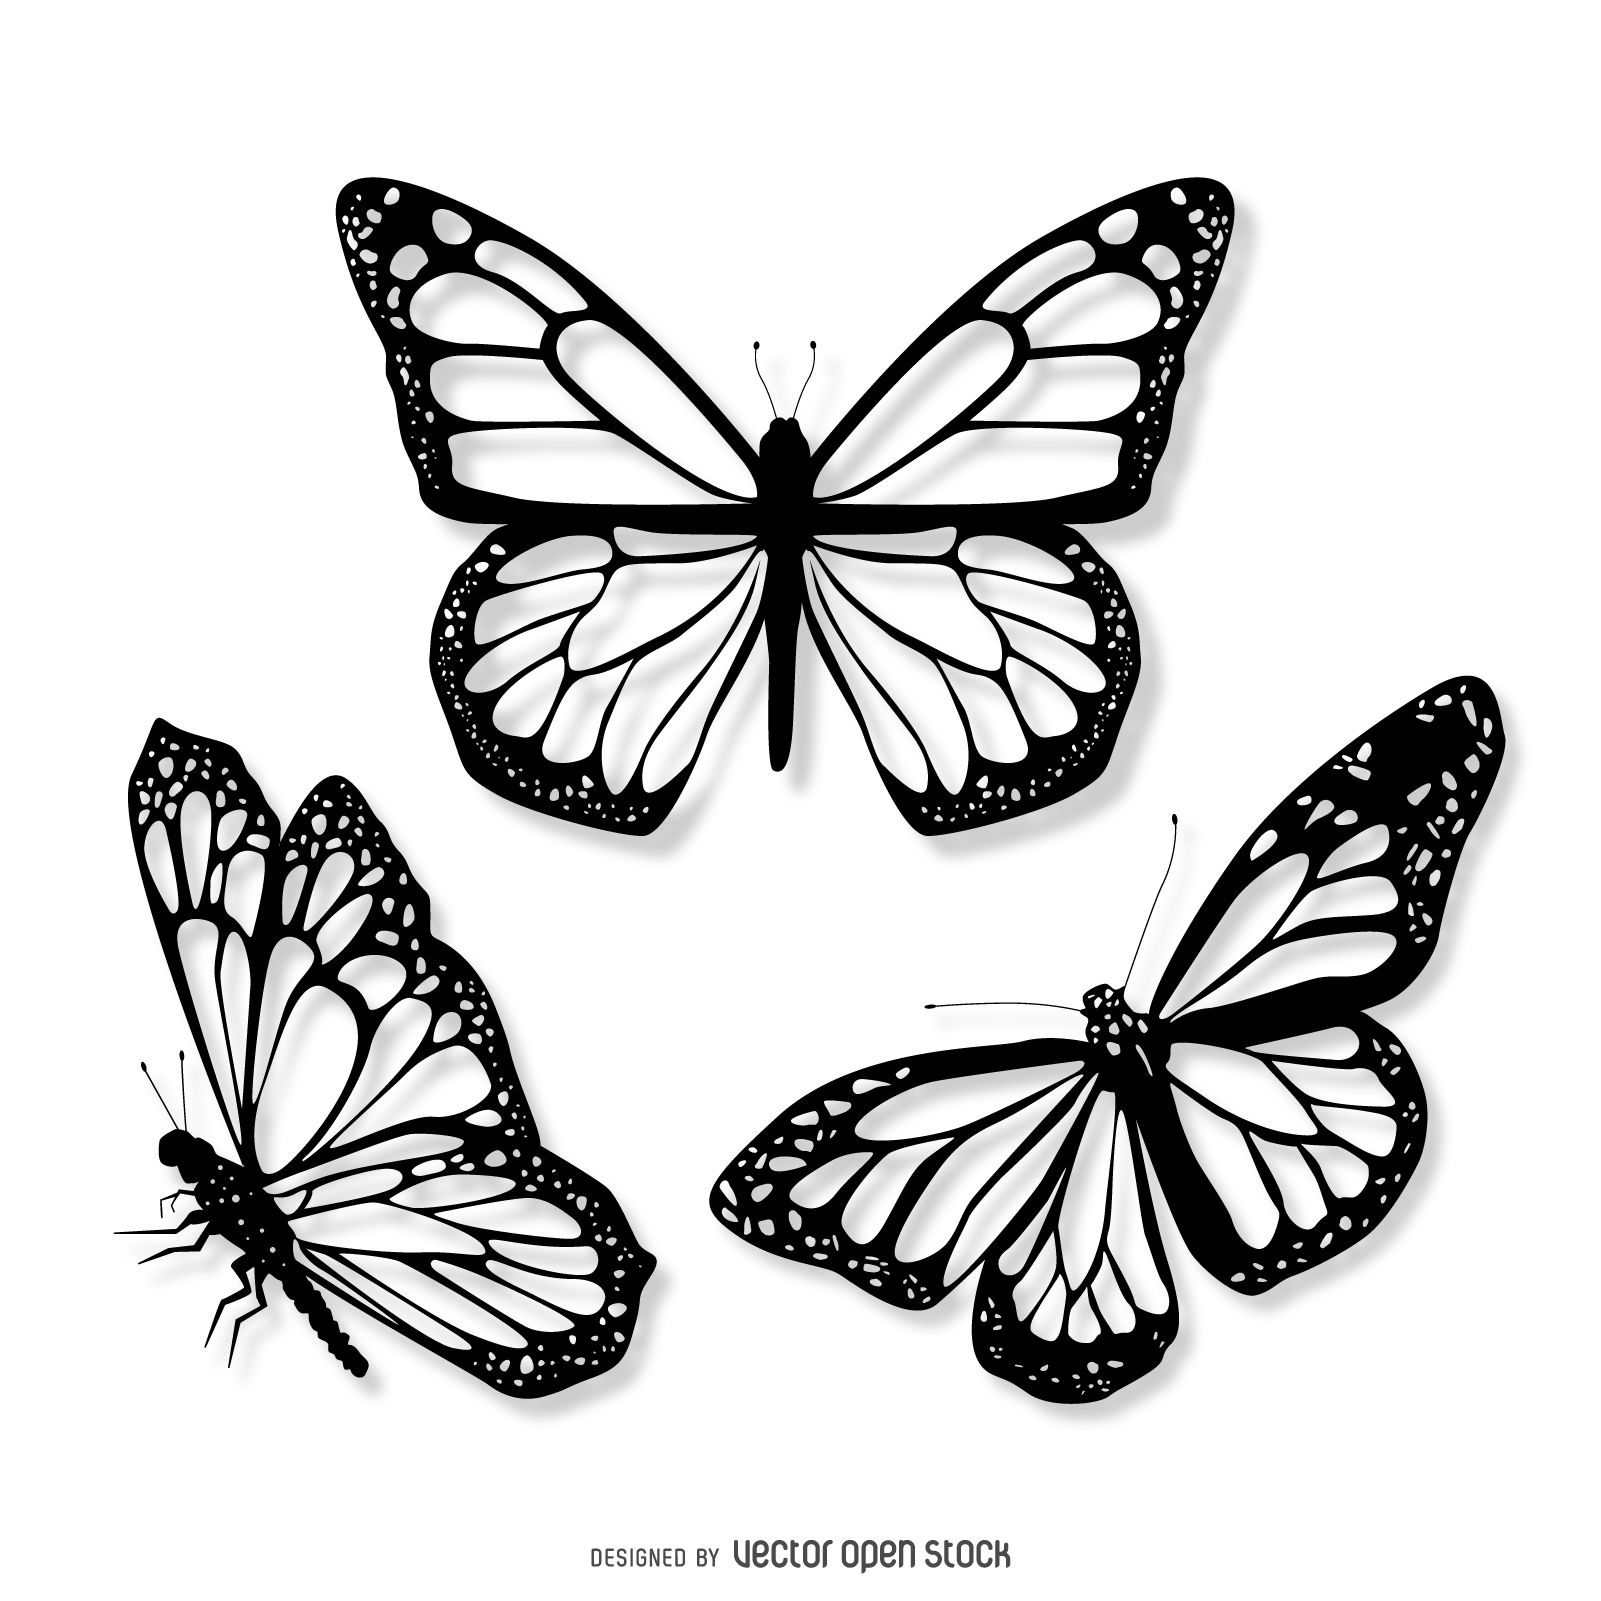 Butterfly Line Drawing Images At Getdrawings